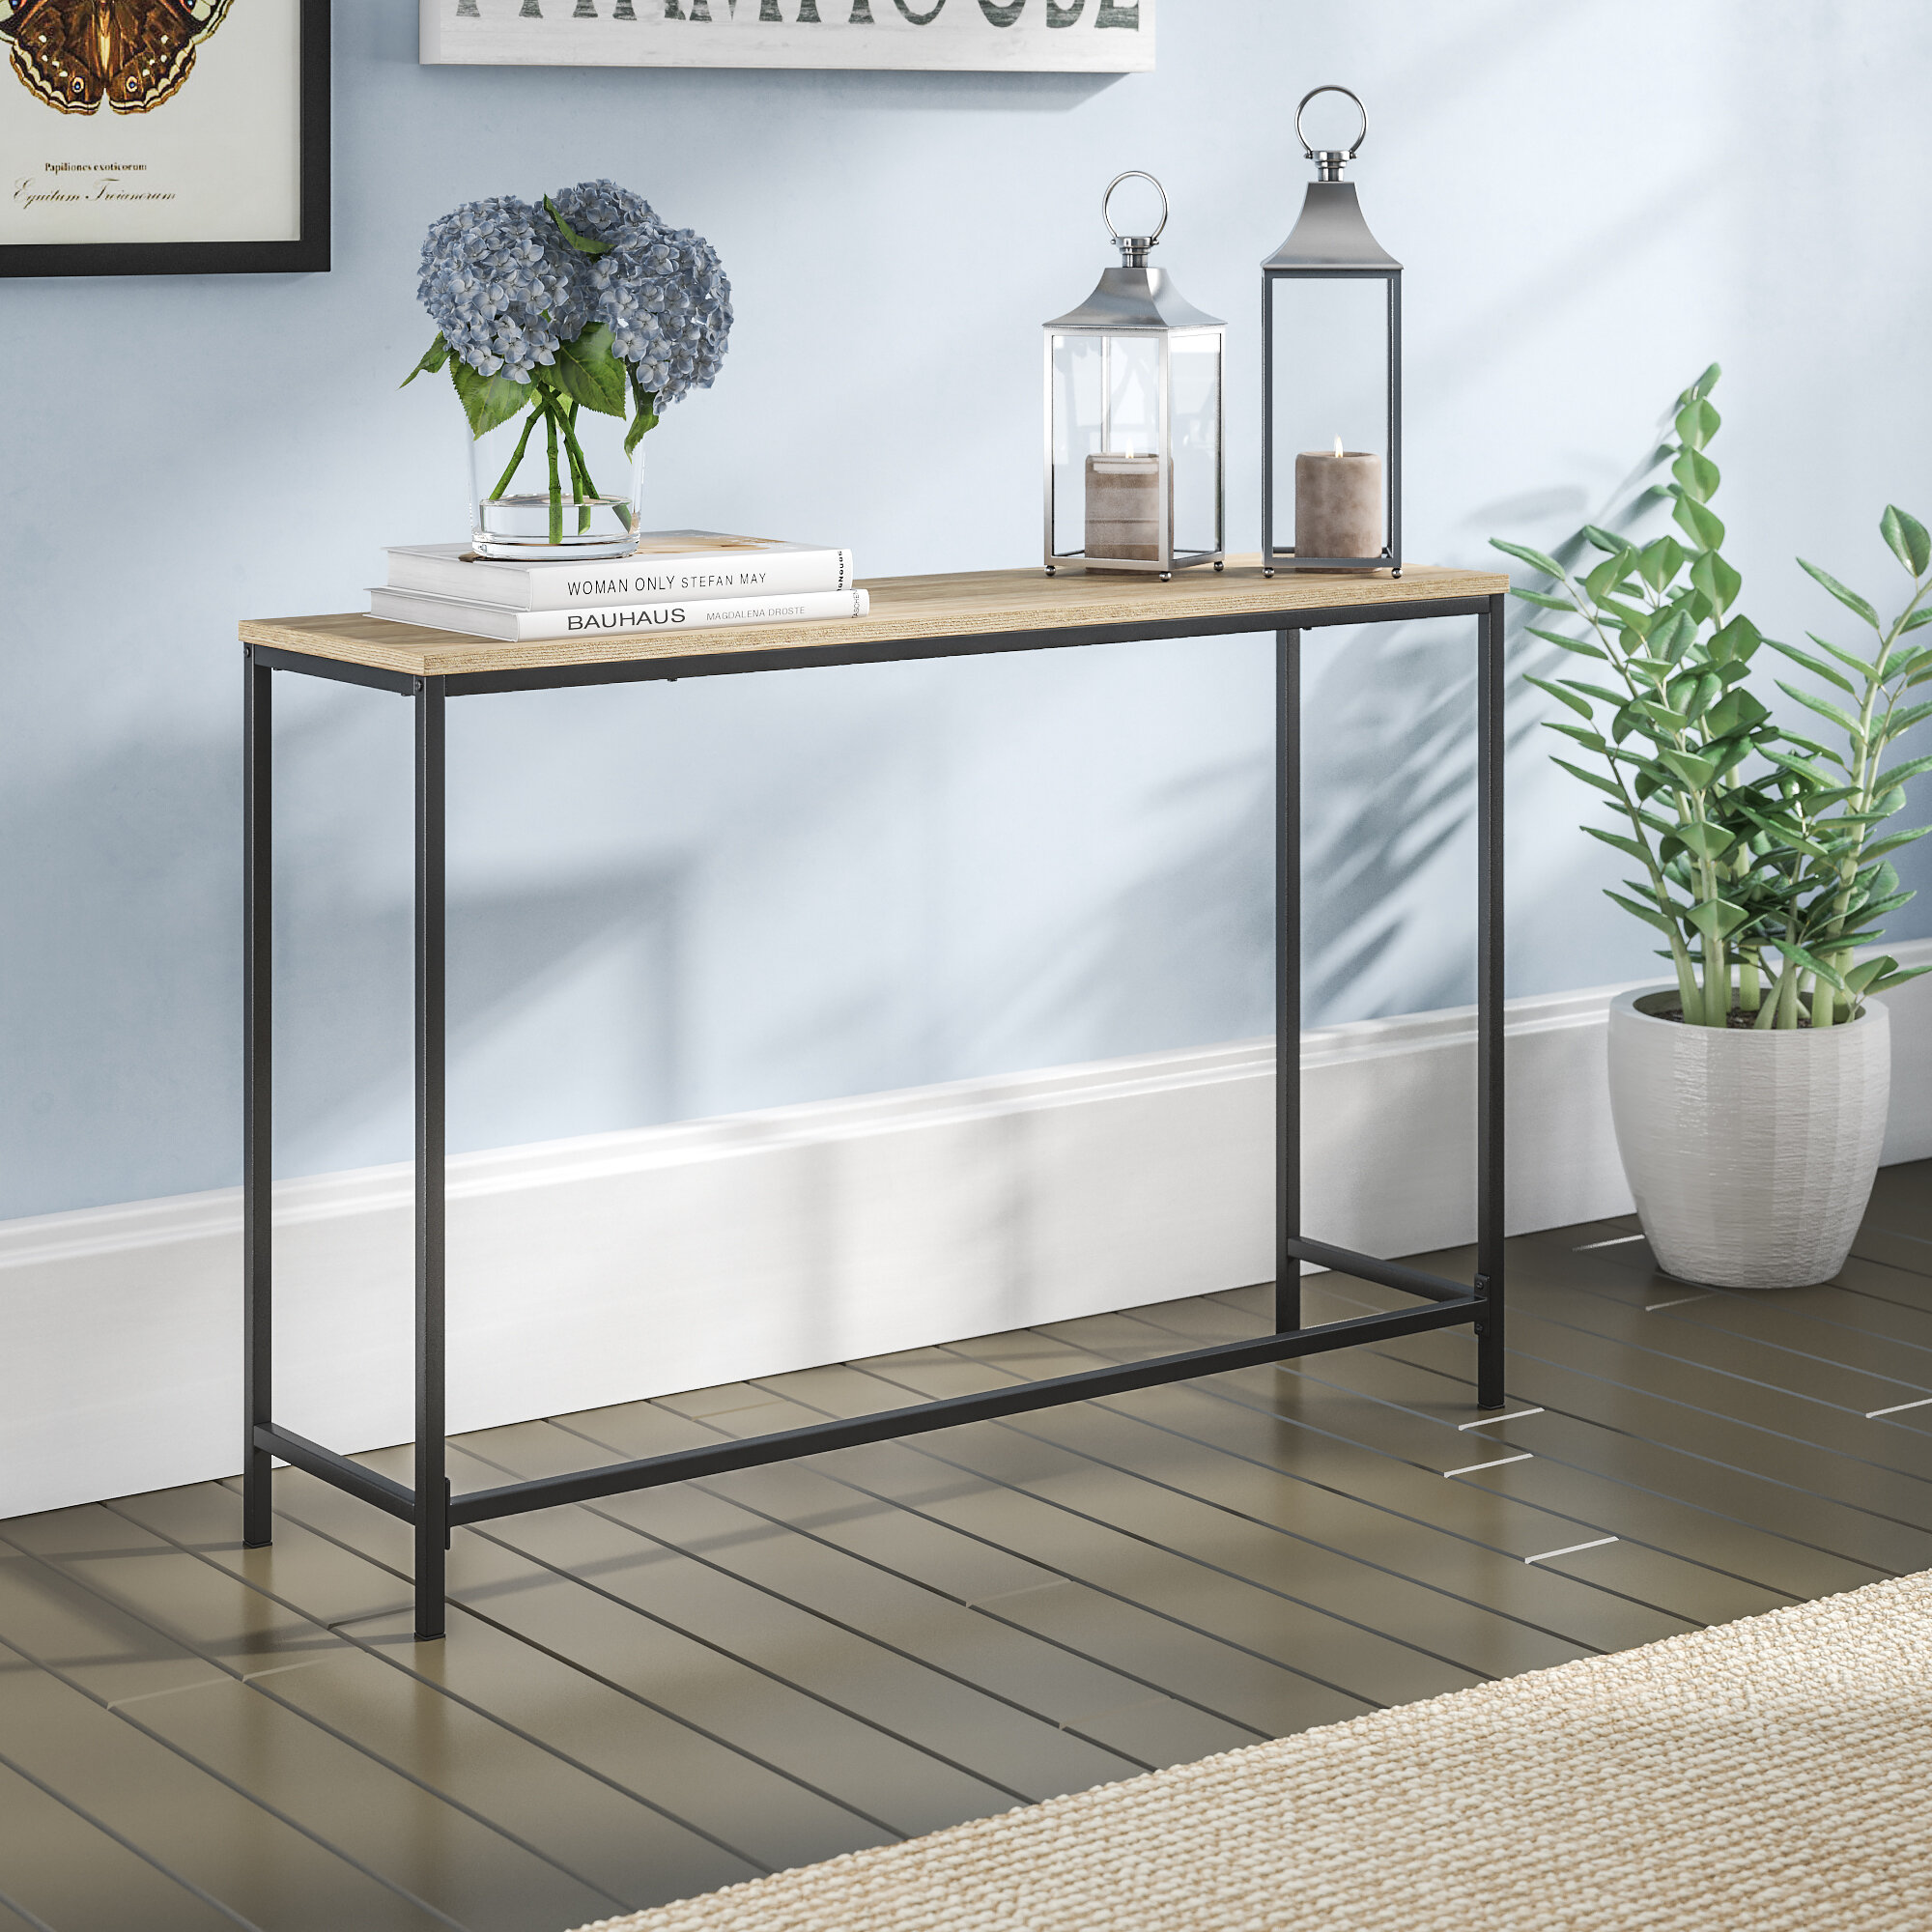 Laurel Foundry Modern Farmhouse Ermont Console Table & Reviews | Wayfair